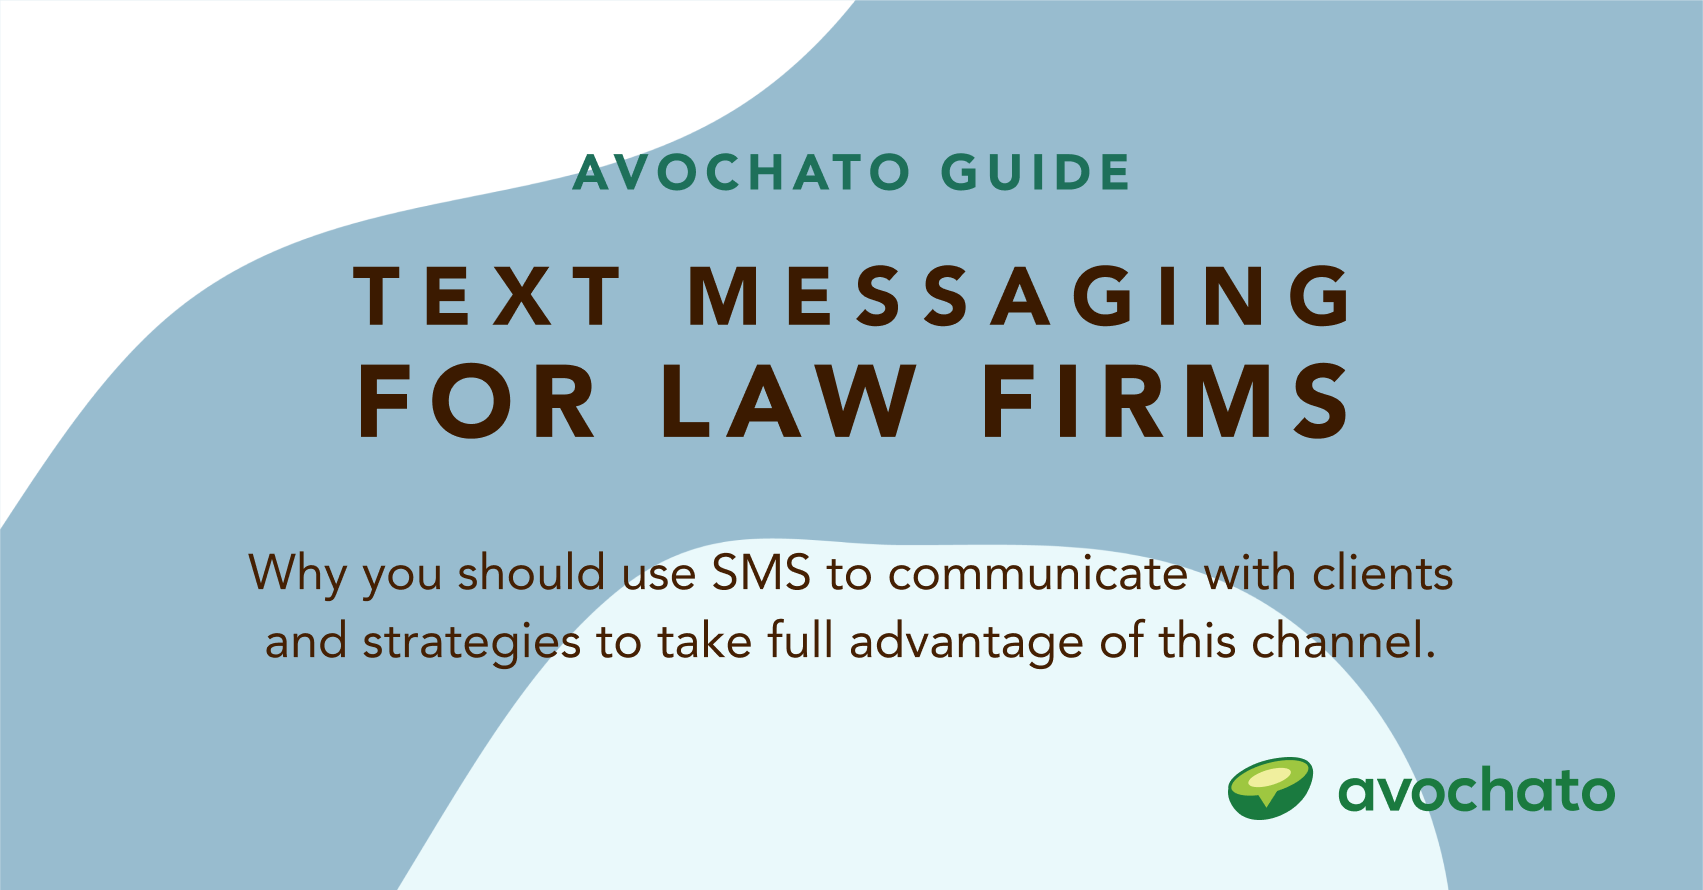 law firm sms guide